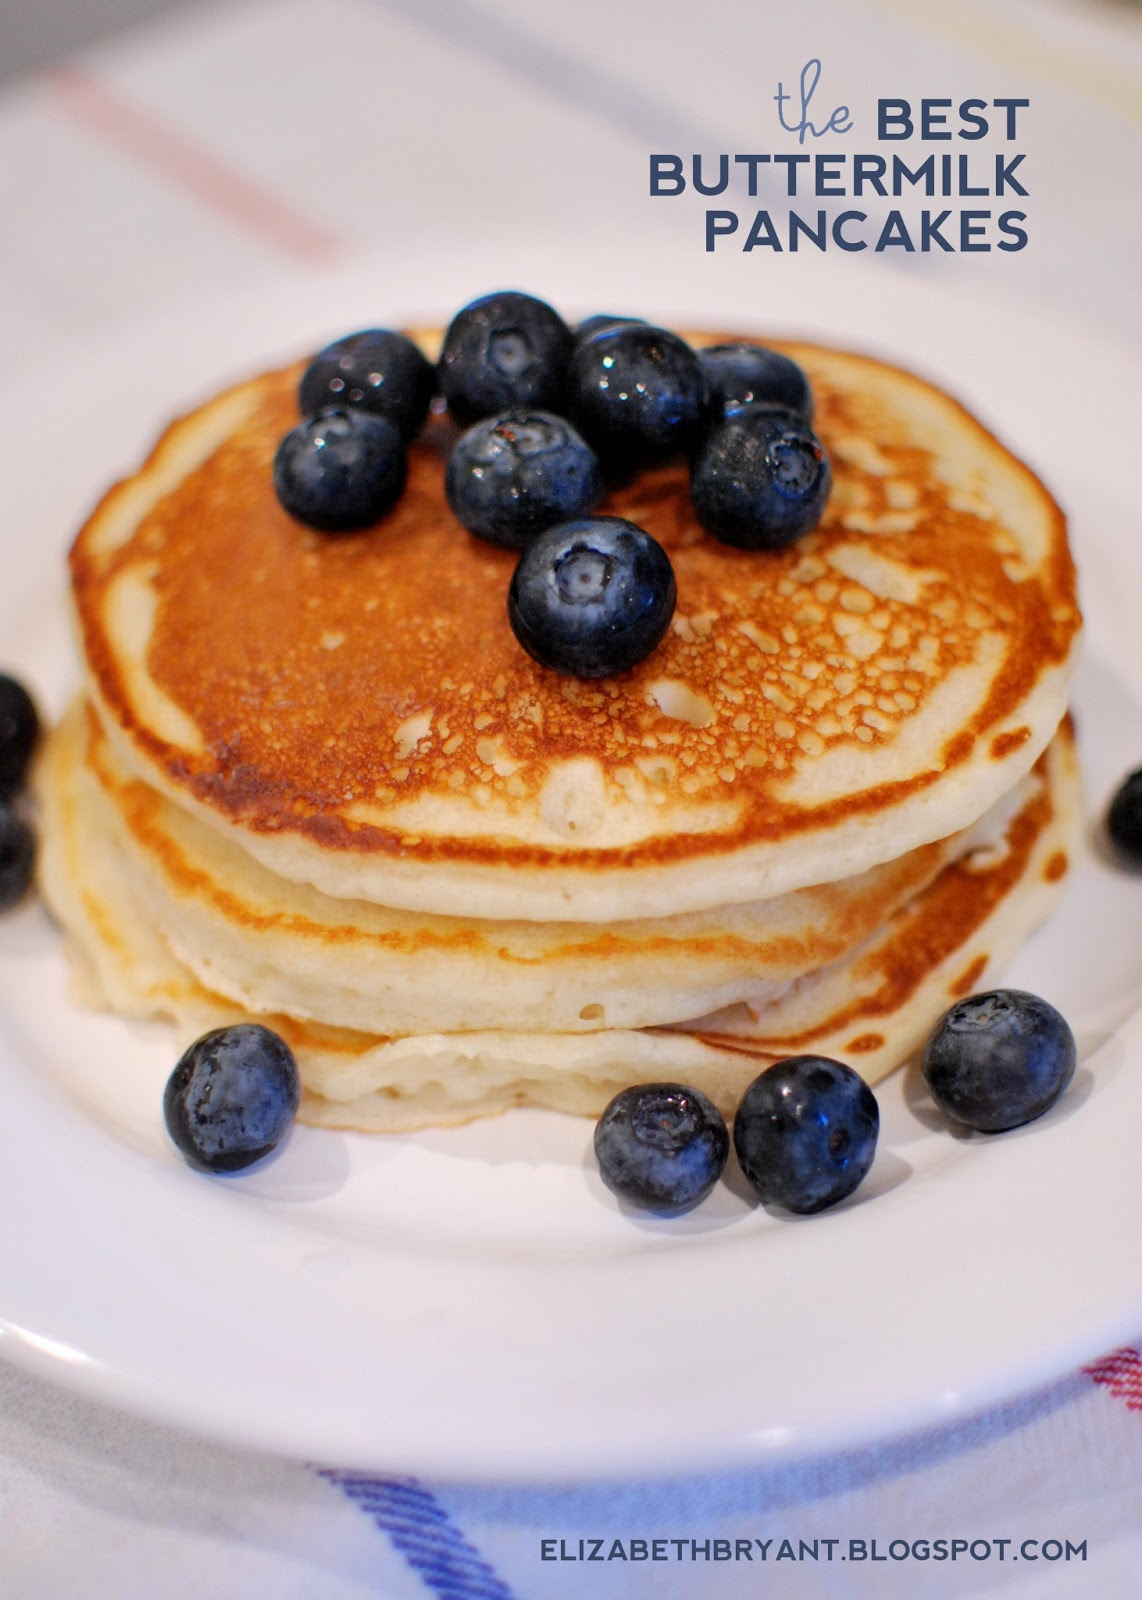 lizzy write: the best buttermilk pancakes